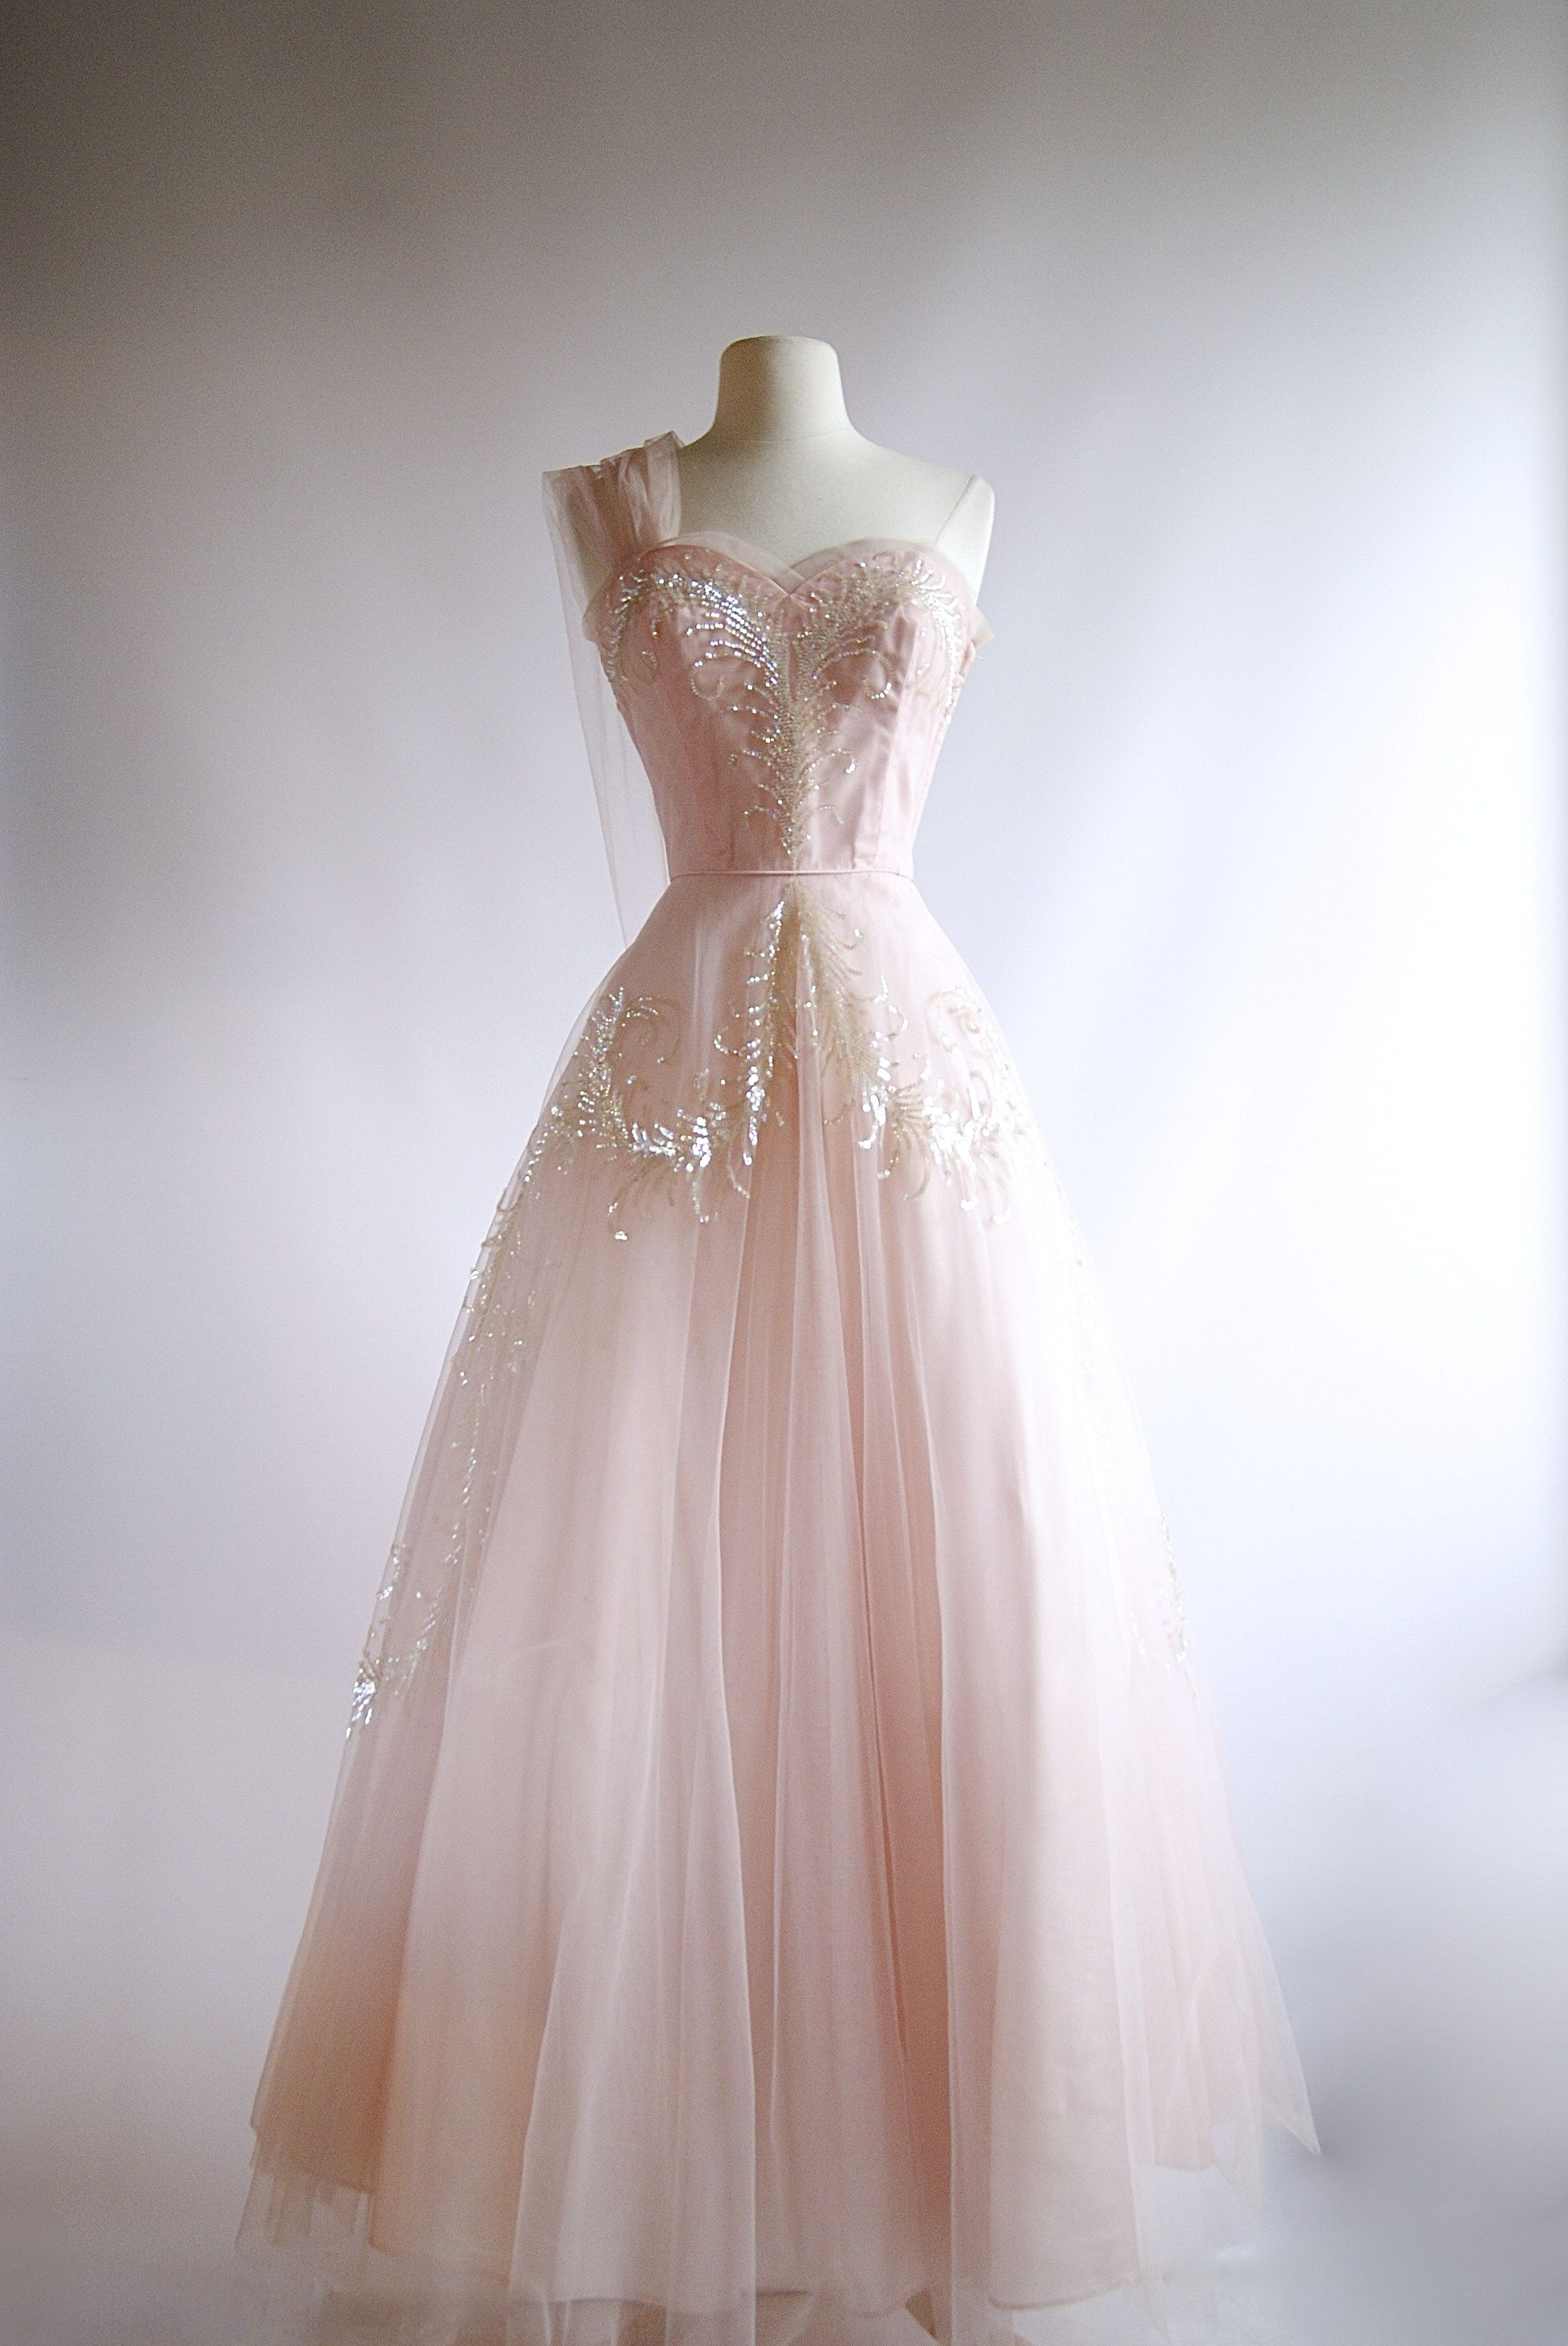 f41c107a7ef Do you think Romeo would like this dress  I m looking for the perfect dress  to impress him.